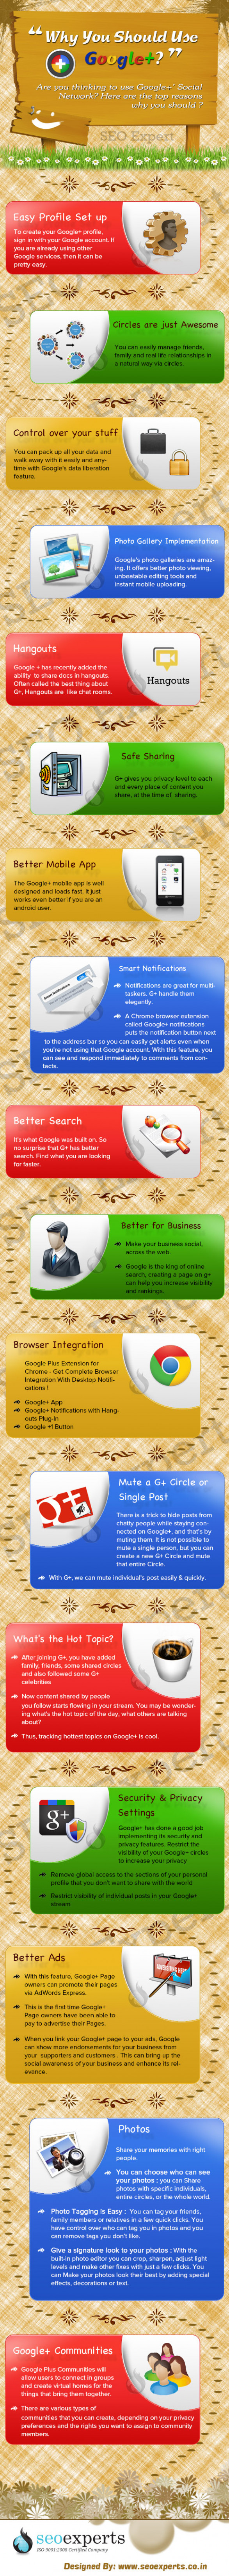 Why You Should Use Google+?